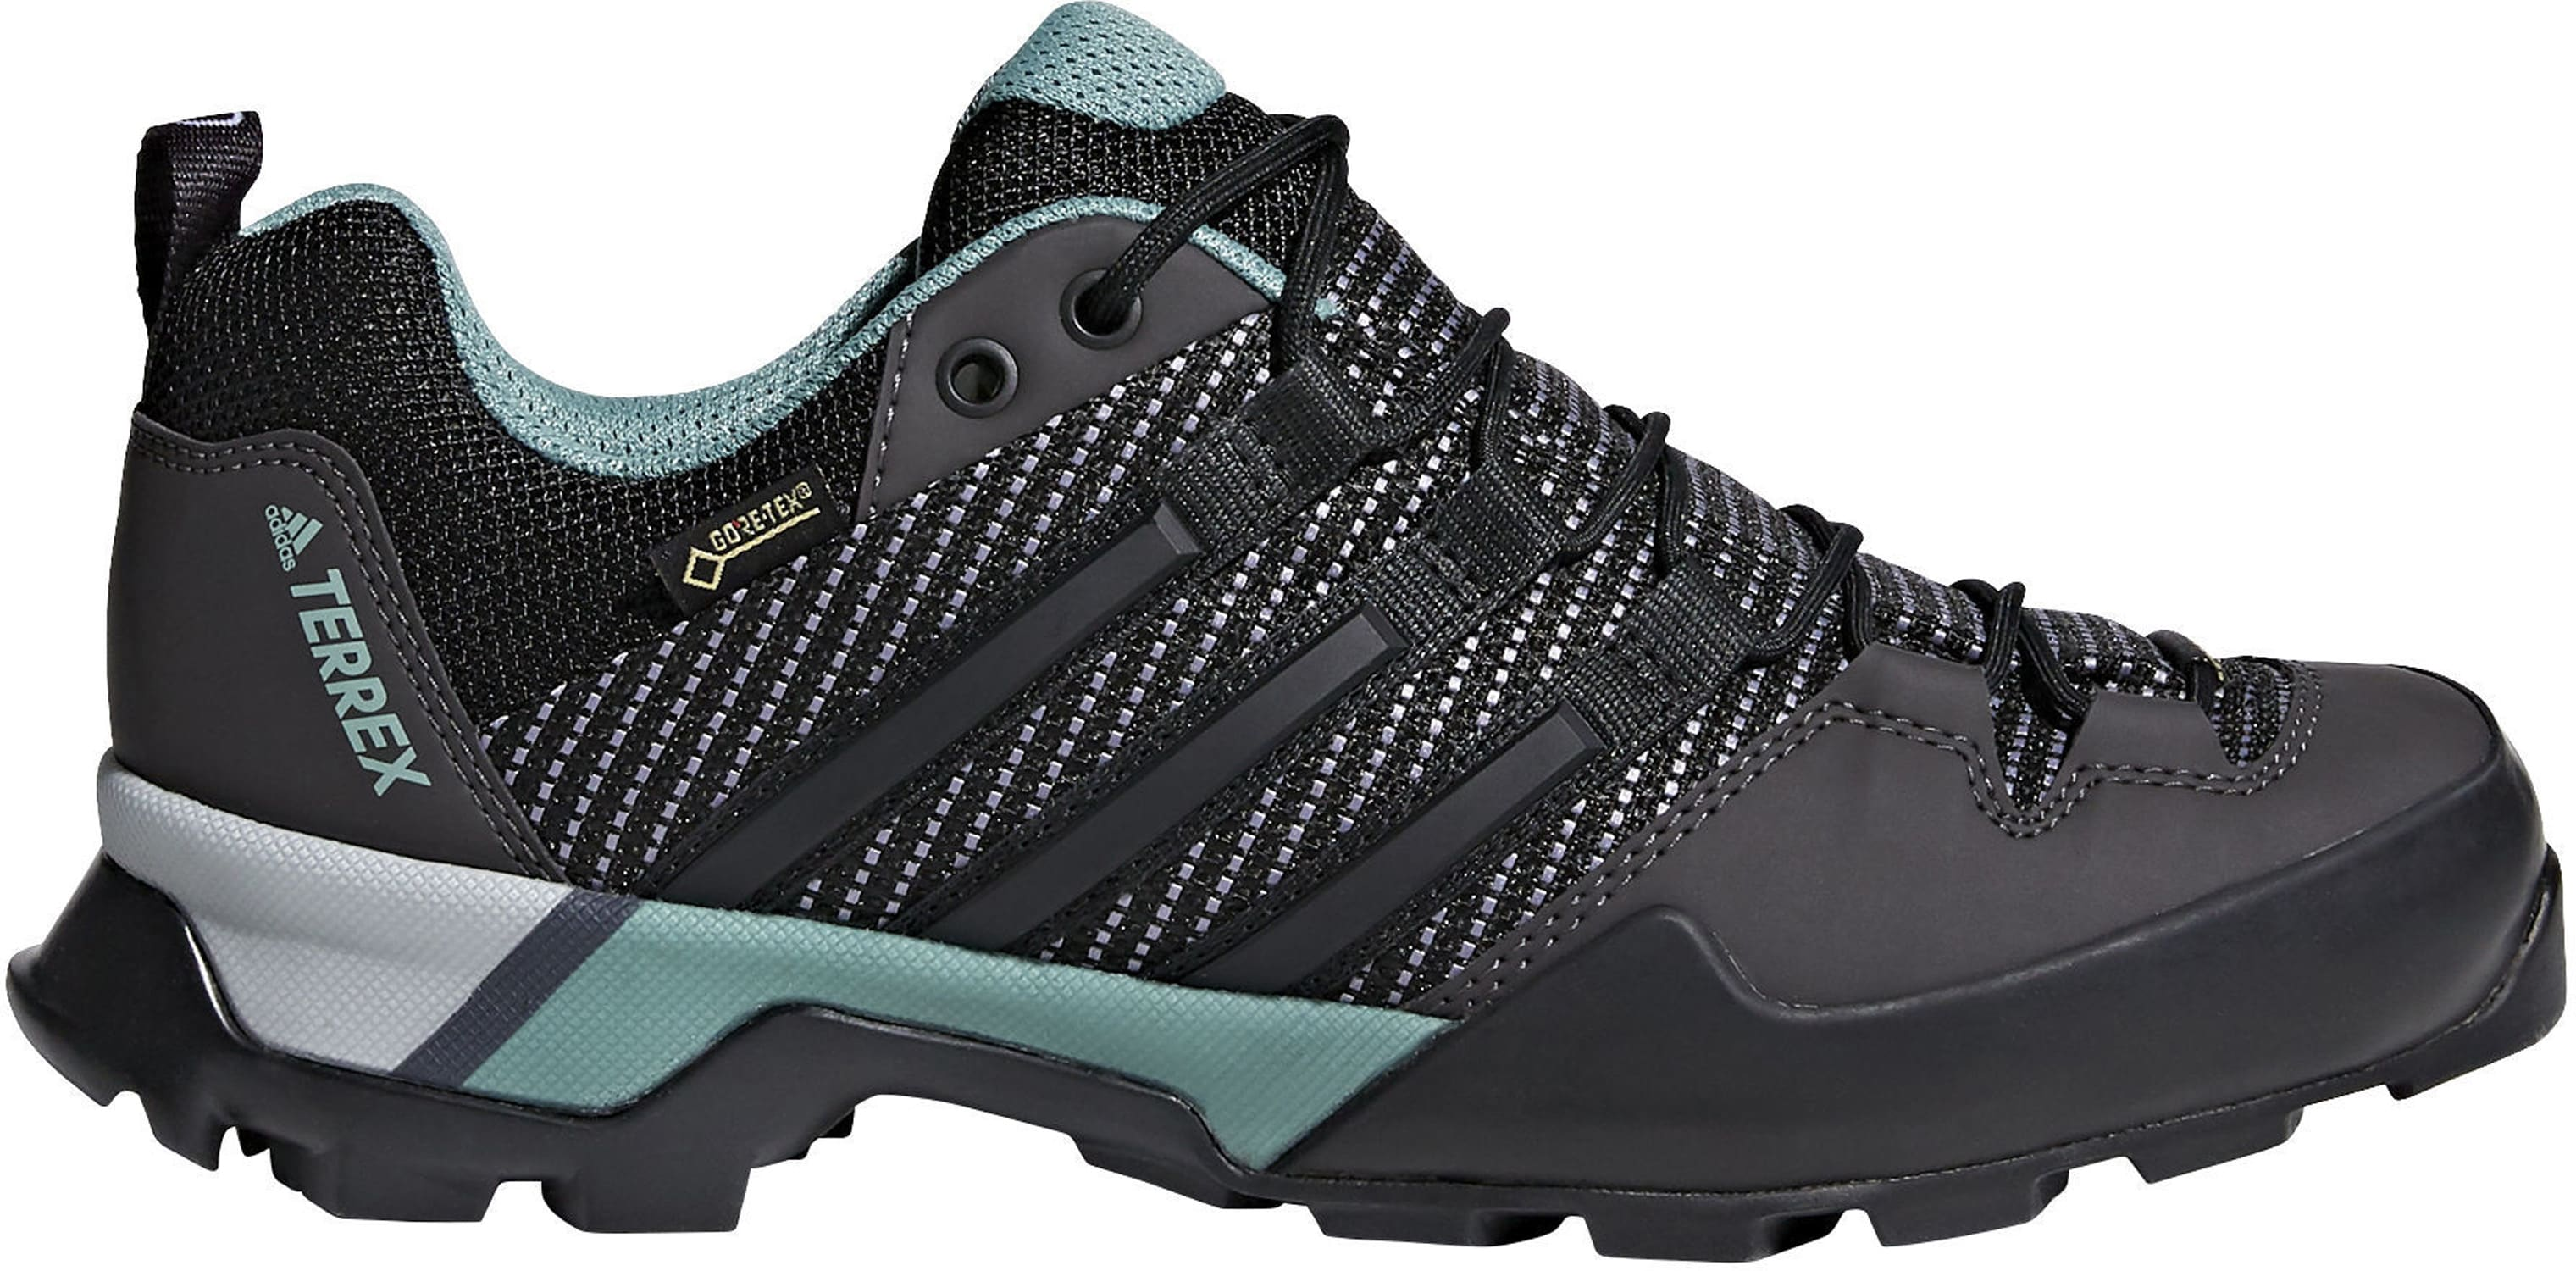 Adidas Terrex Scope GTX Hiking Shoes - Womens 2019